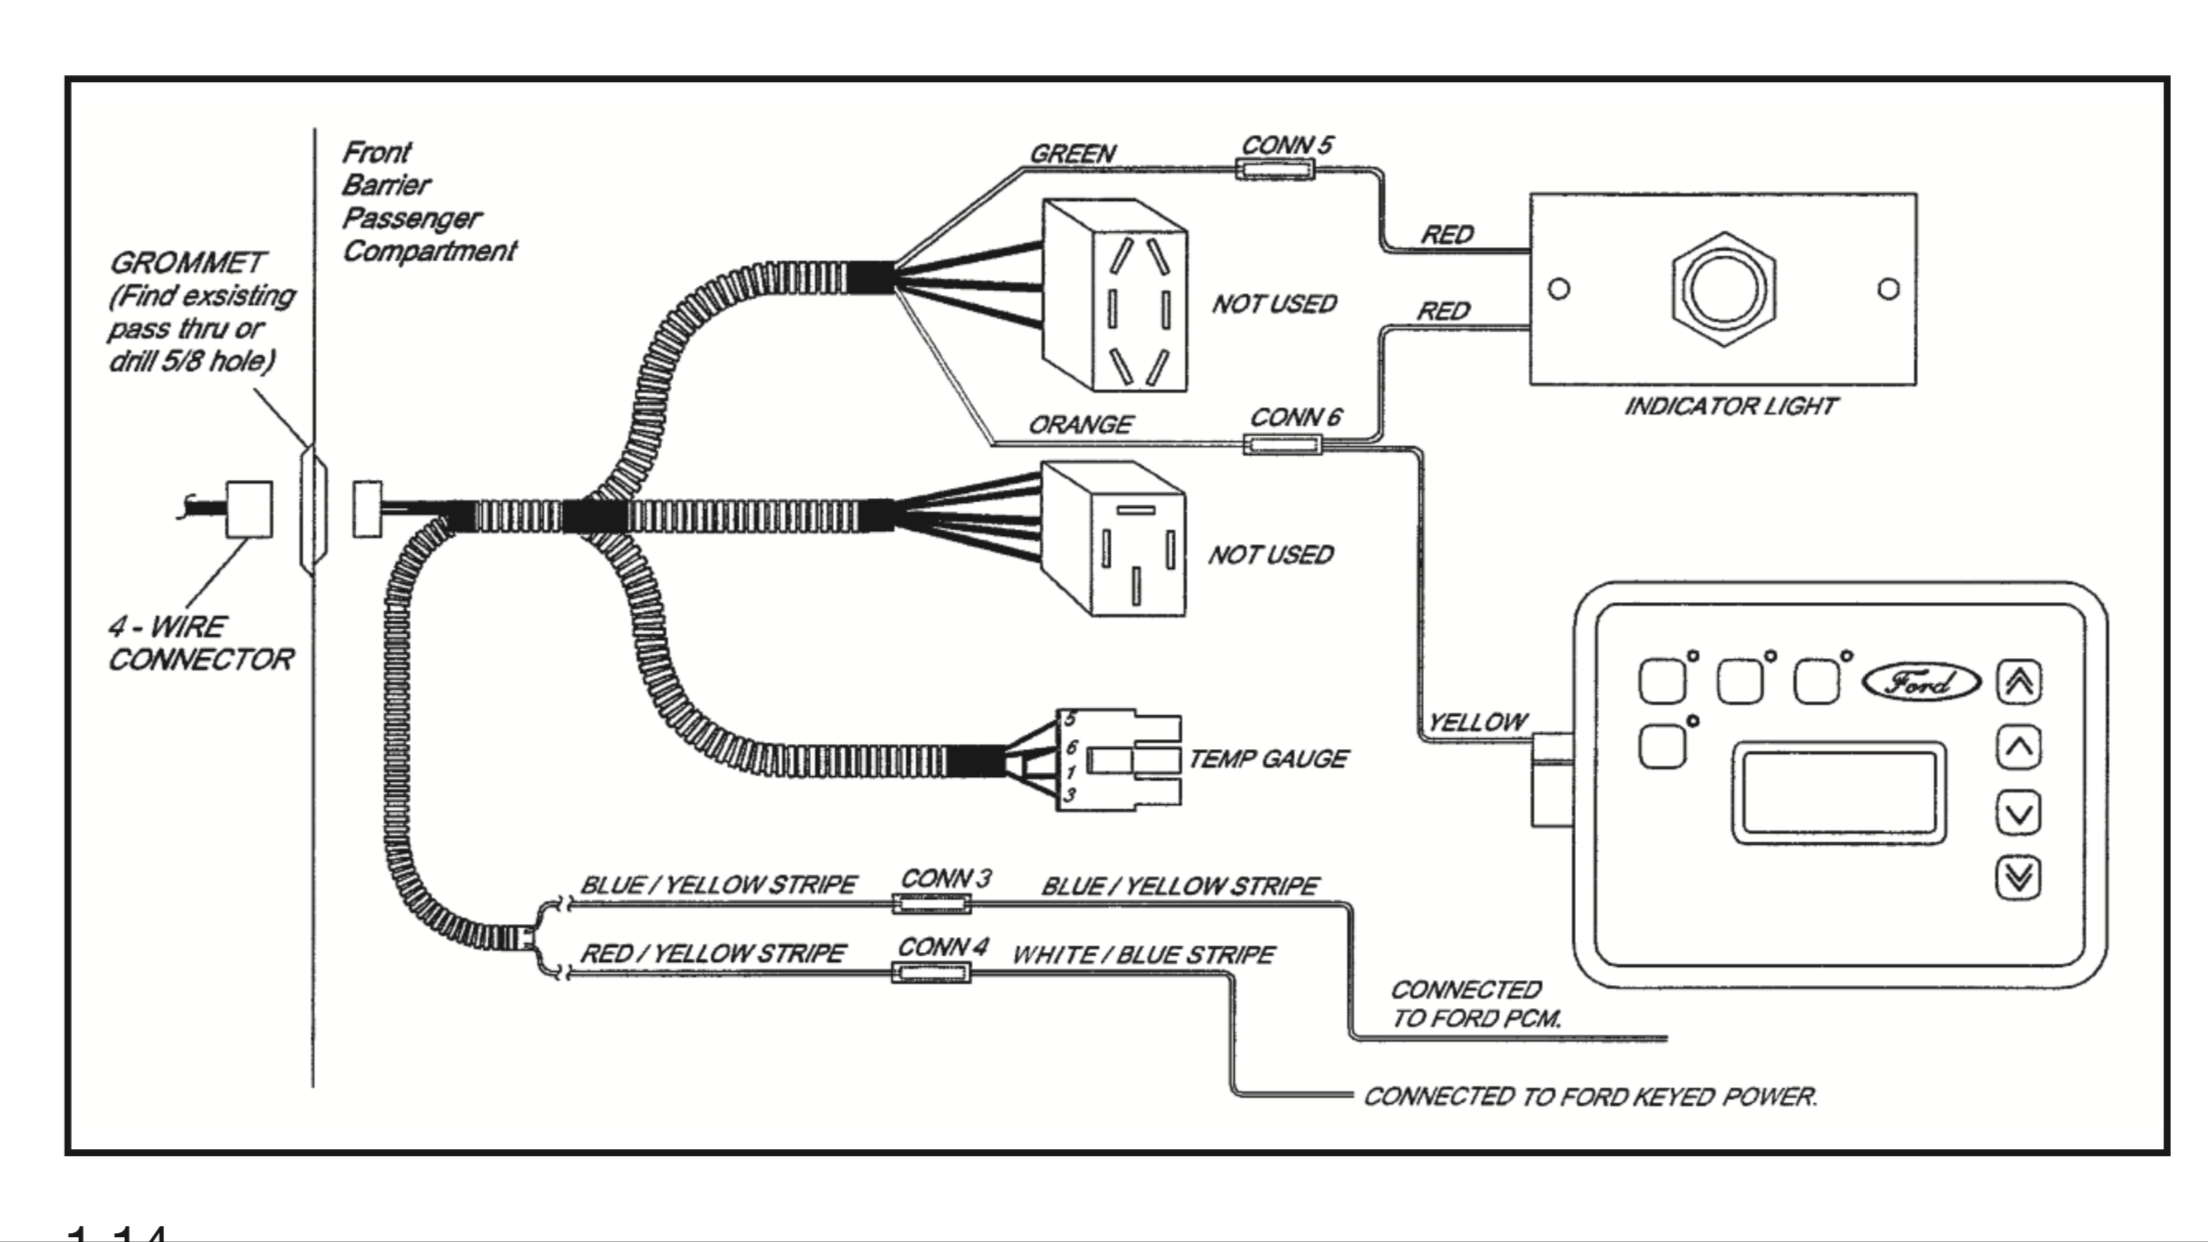 26 Ford Upfitter Switches Wiring Diagram